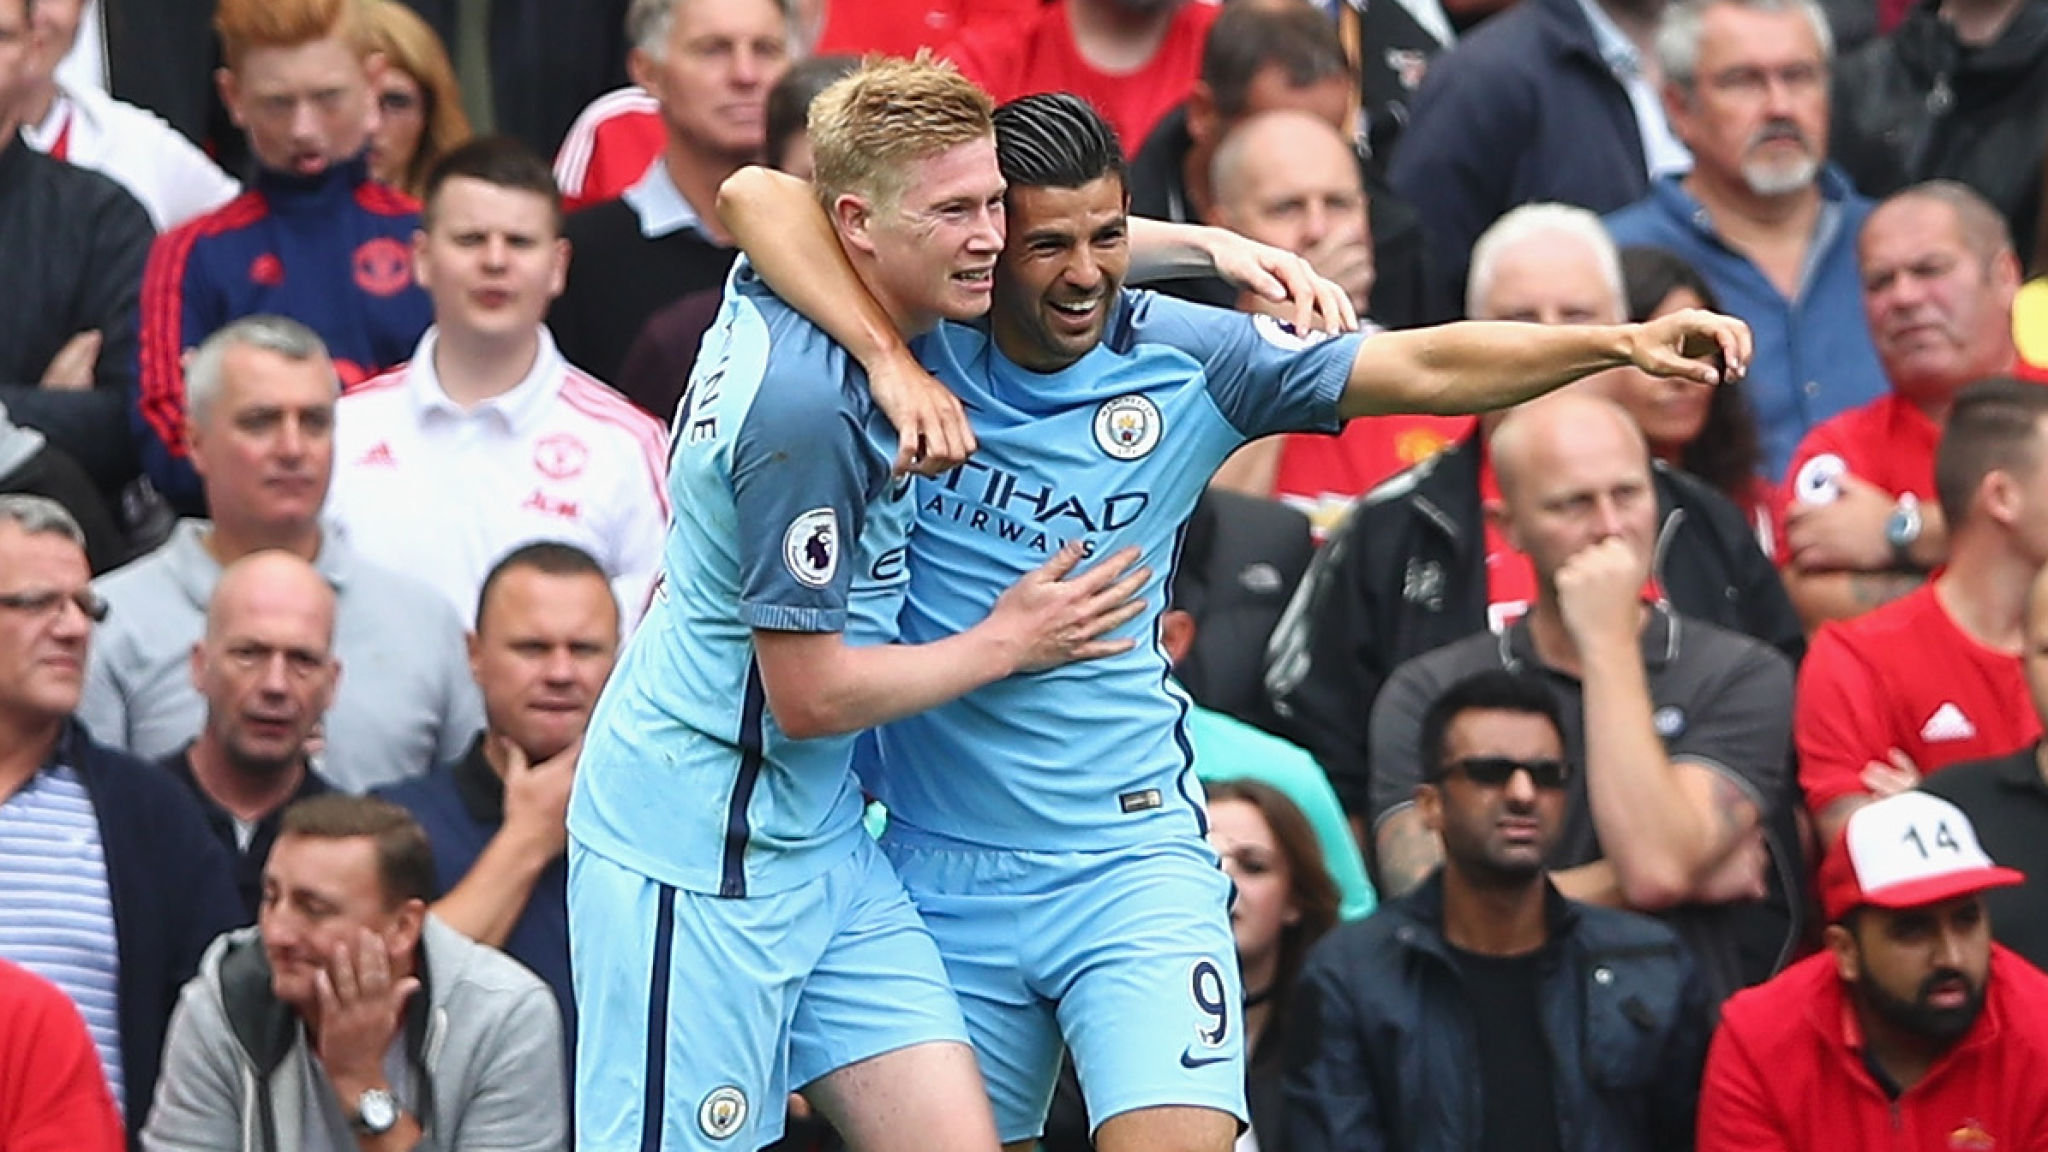 Kevin De Bruyne led City's orchestral manoeuvres on the Dark Side when he opened the scoring.